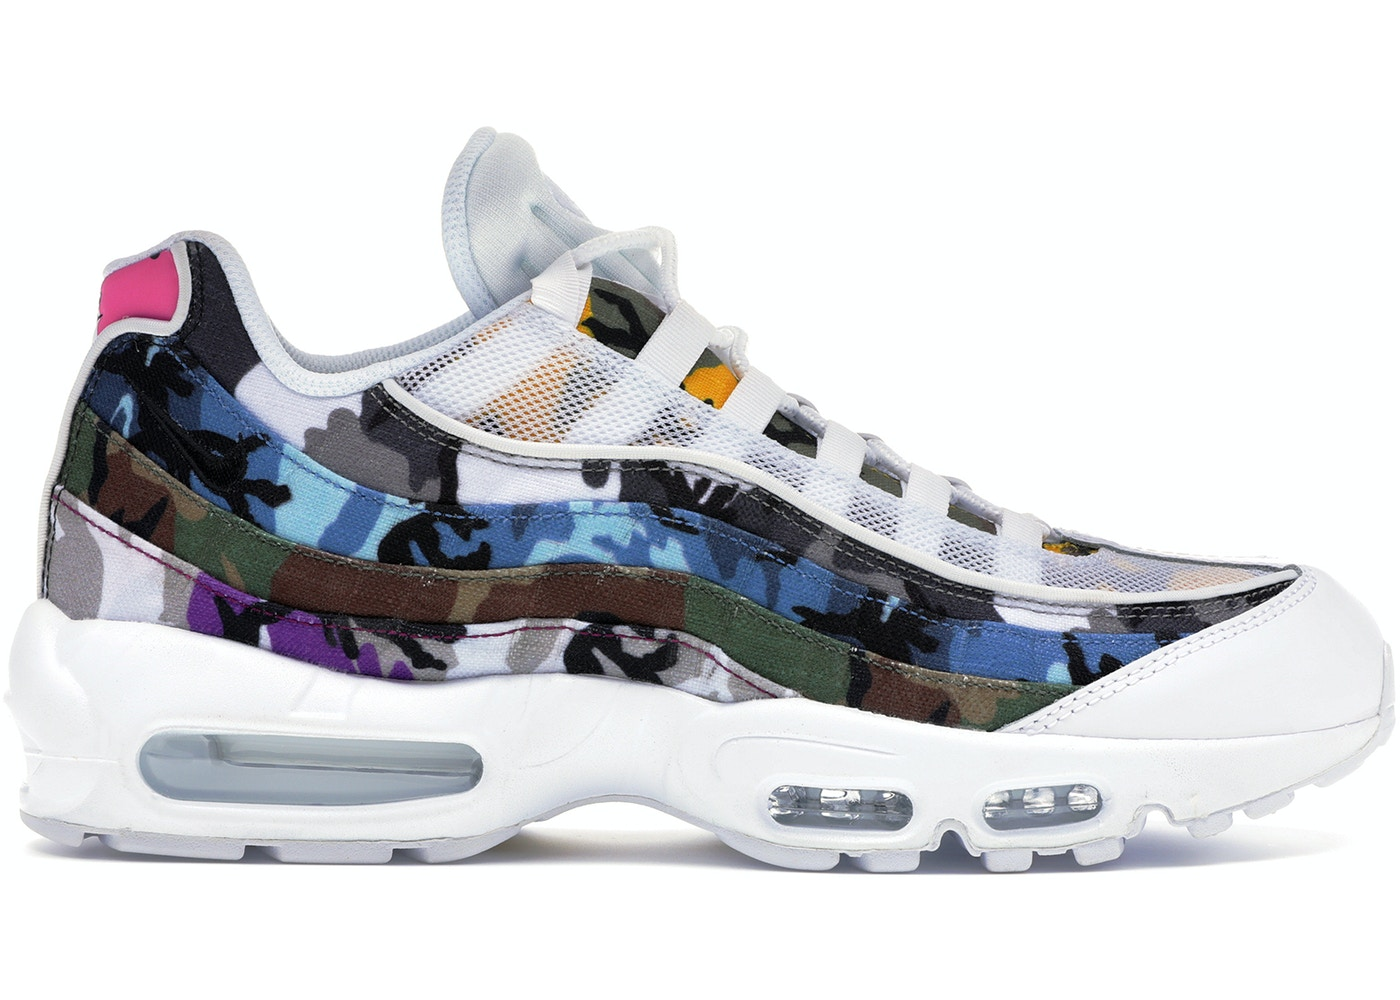 2a83924e659 Buy Nike Air Max 95 Shoes   Deadstock Sneakers